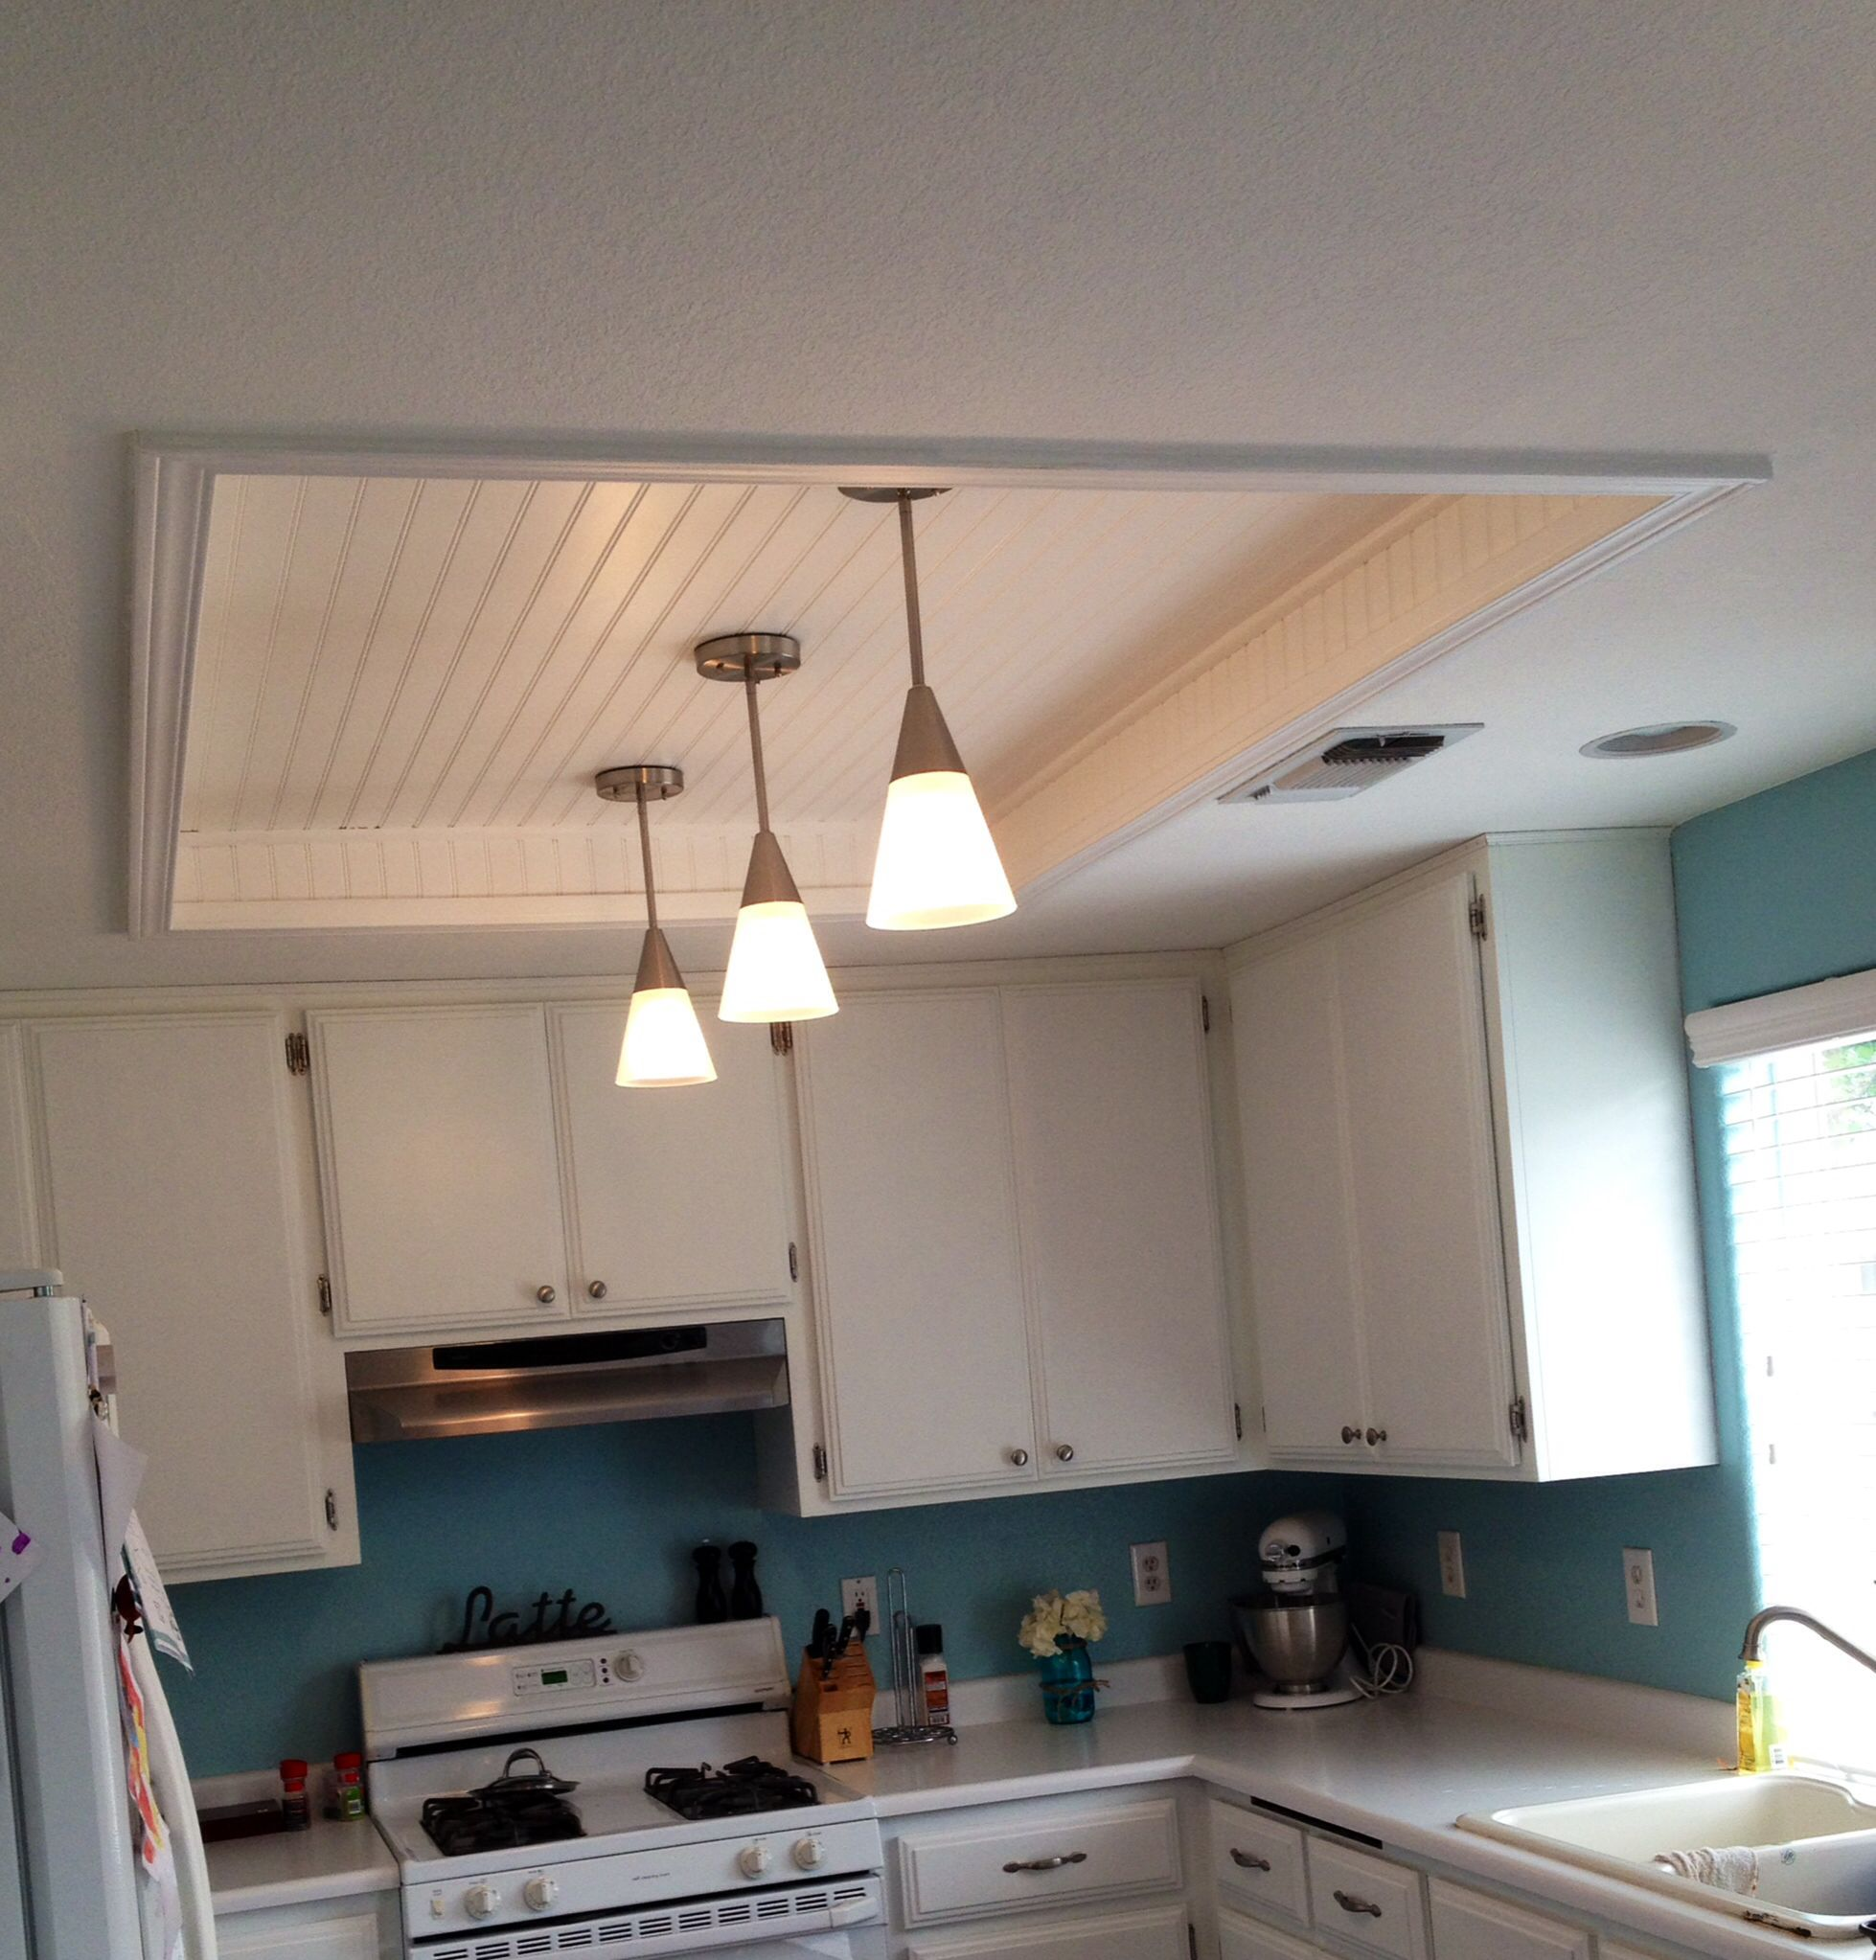 Pin By Karen Gourley May On Diy Kitchen Lighting Remodel Kitchen Ceiling Diy Kitchen Lighting